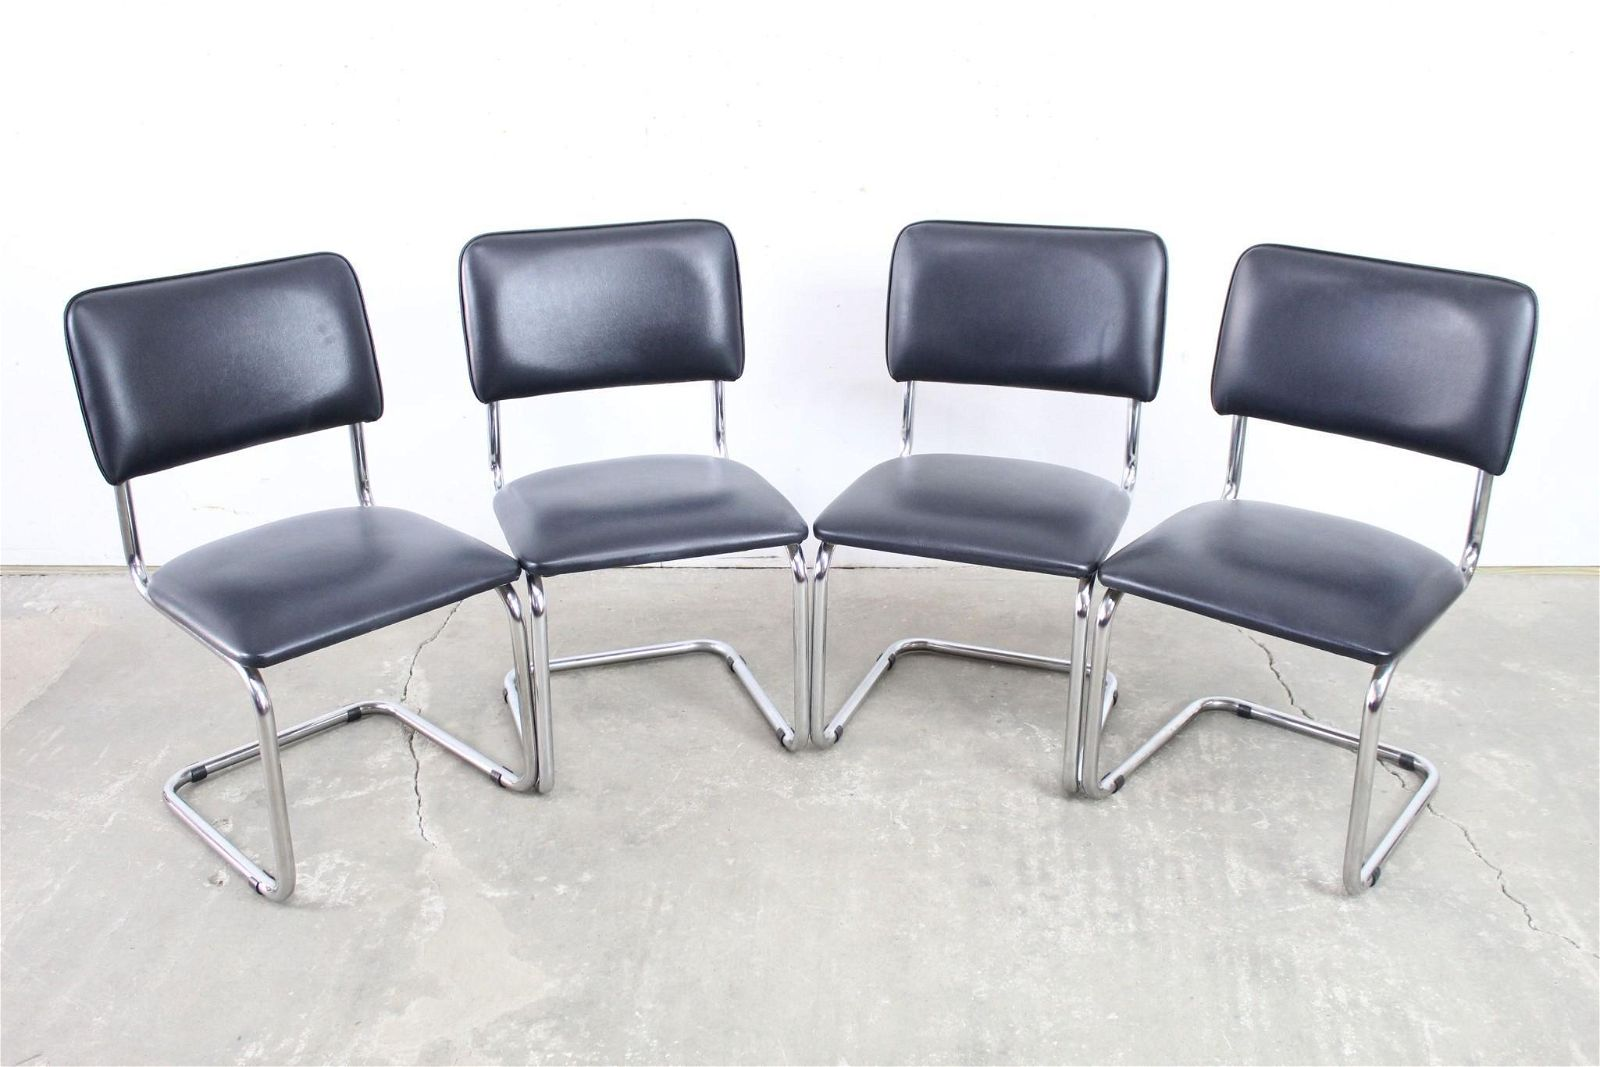 Set of 4 Modern Black & Chrome Cantilever Dining Chairs